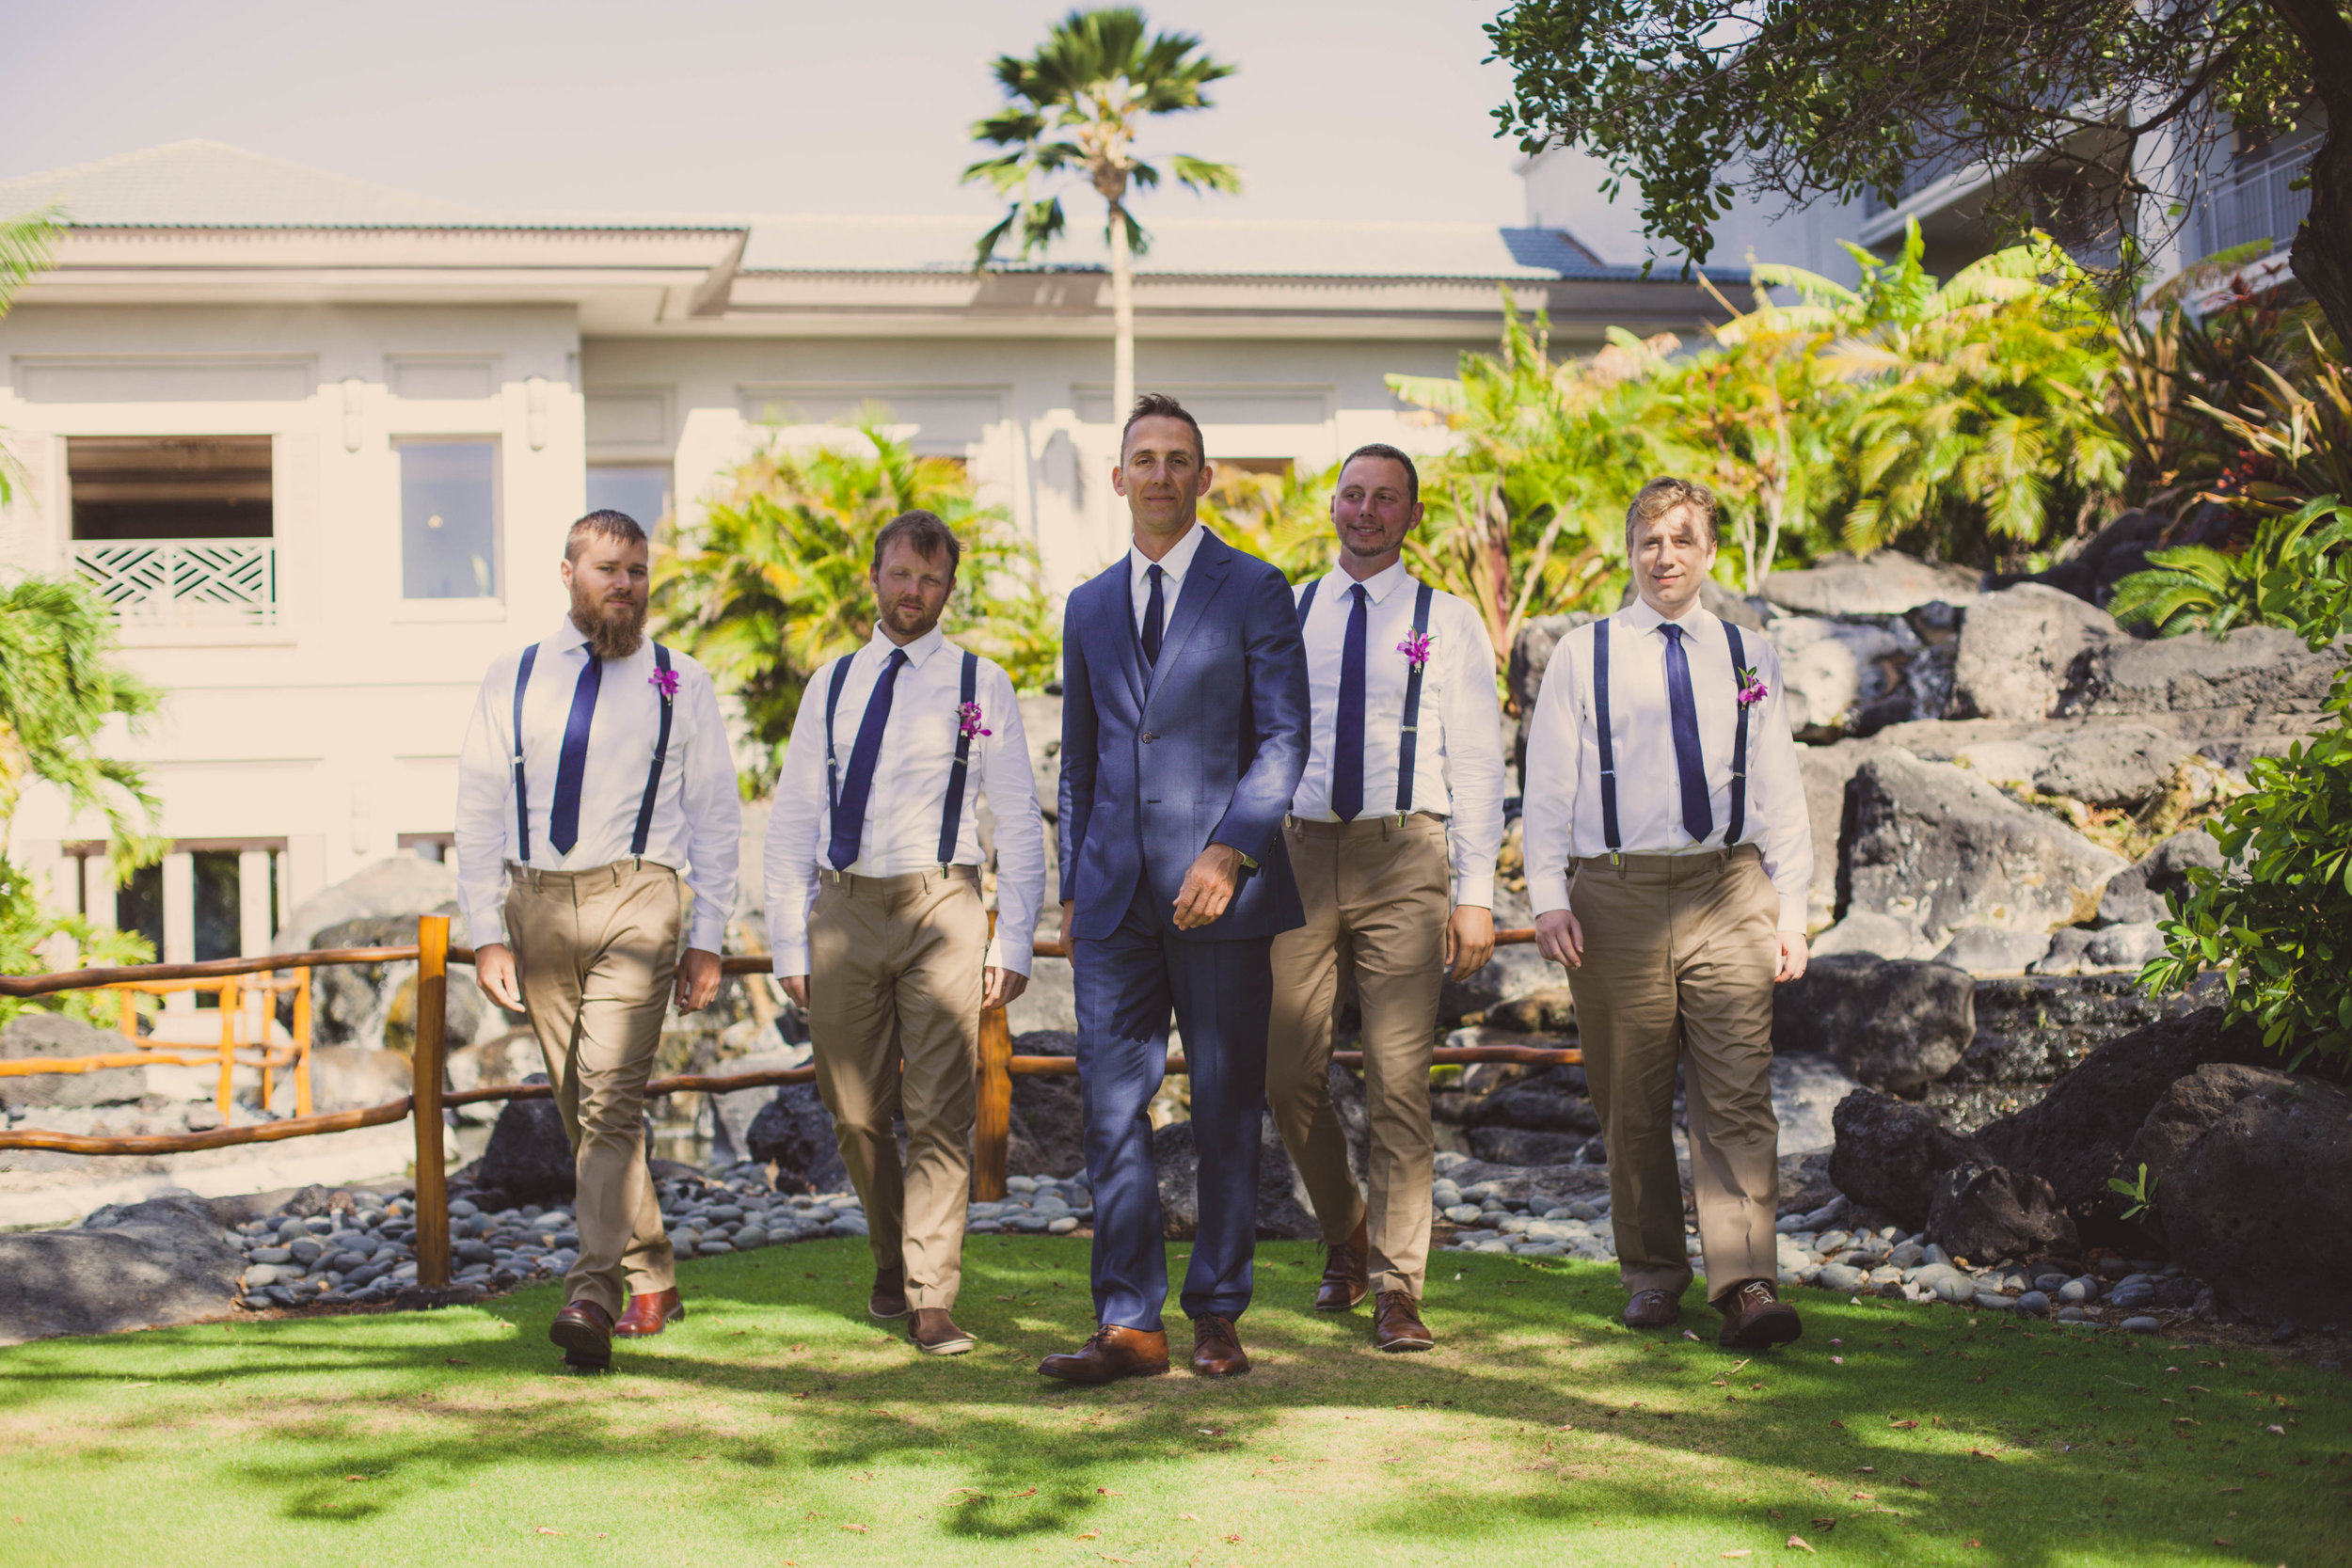 big island hawaii fairmont orchid beach wedding © kelilina photography 20170812161819-1.jpg